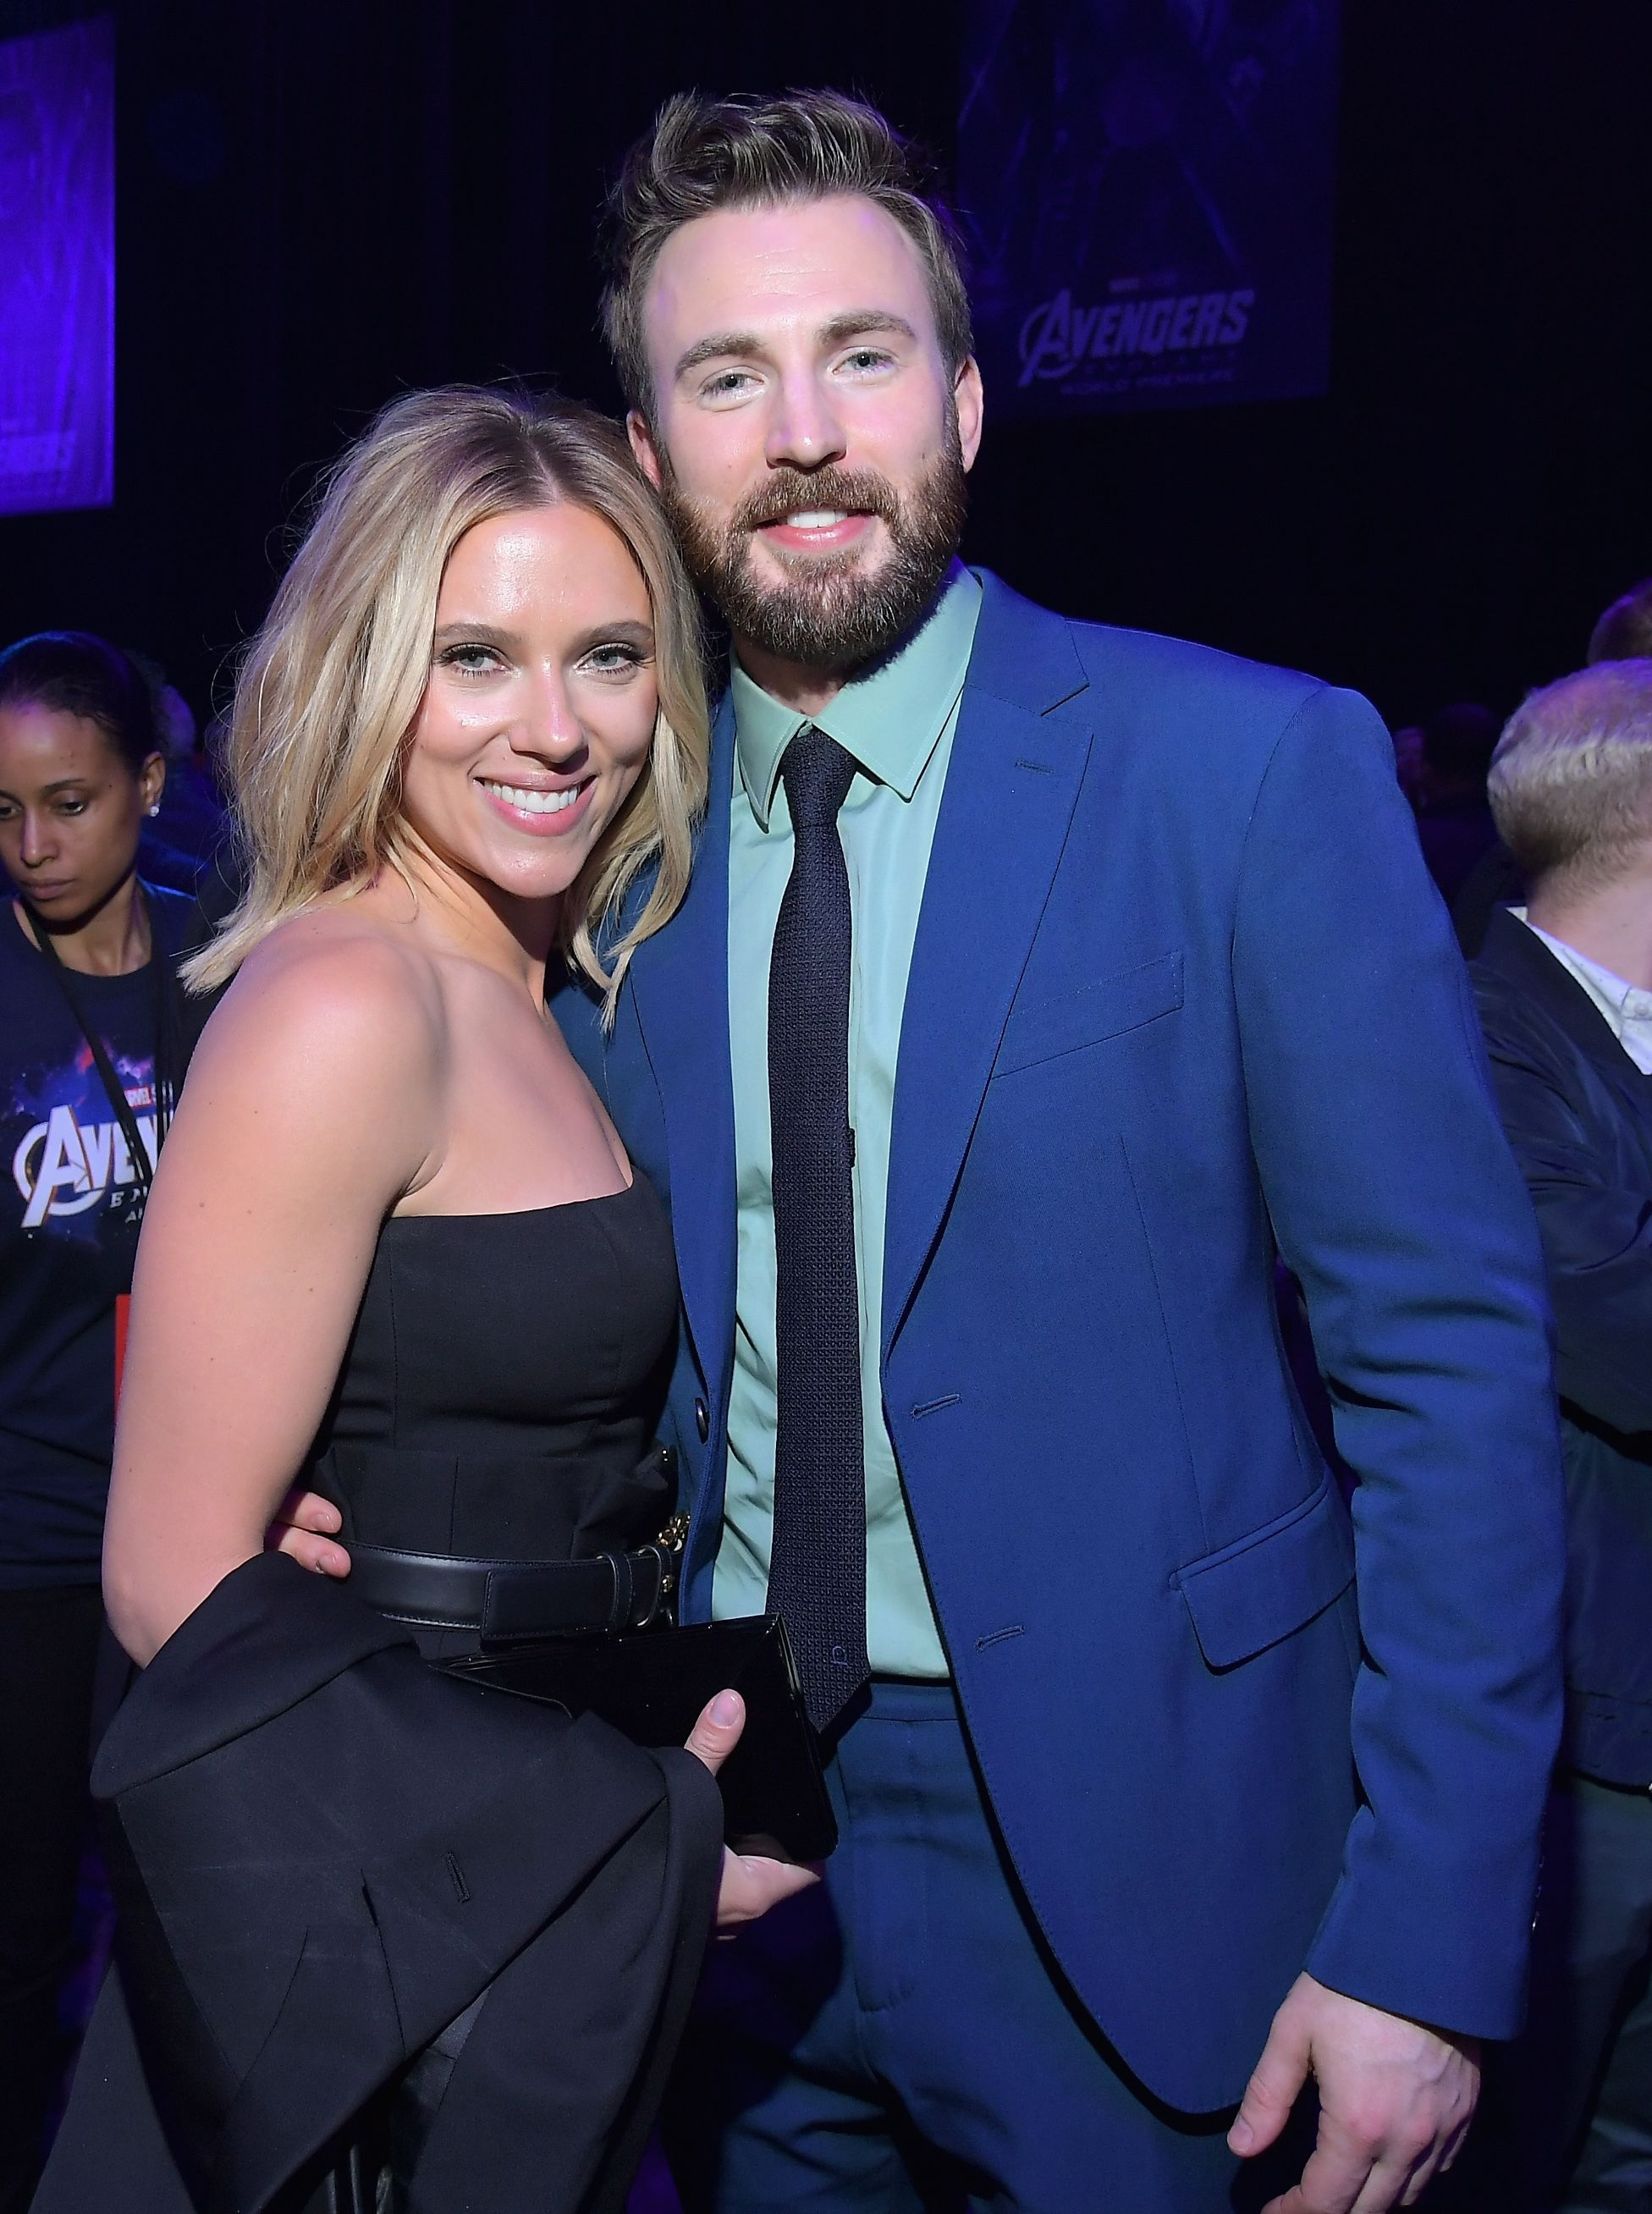 Scarlett Johansson And Chris Evans At The Avengers Endgame Movie Premiere After Part Chris Evans Scarlett Johansson Chris Evans Scarlett Johansson Hairstyle